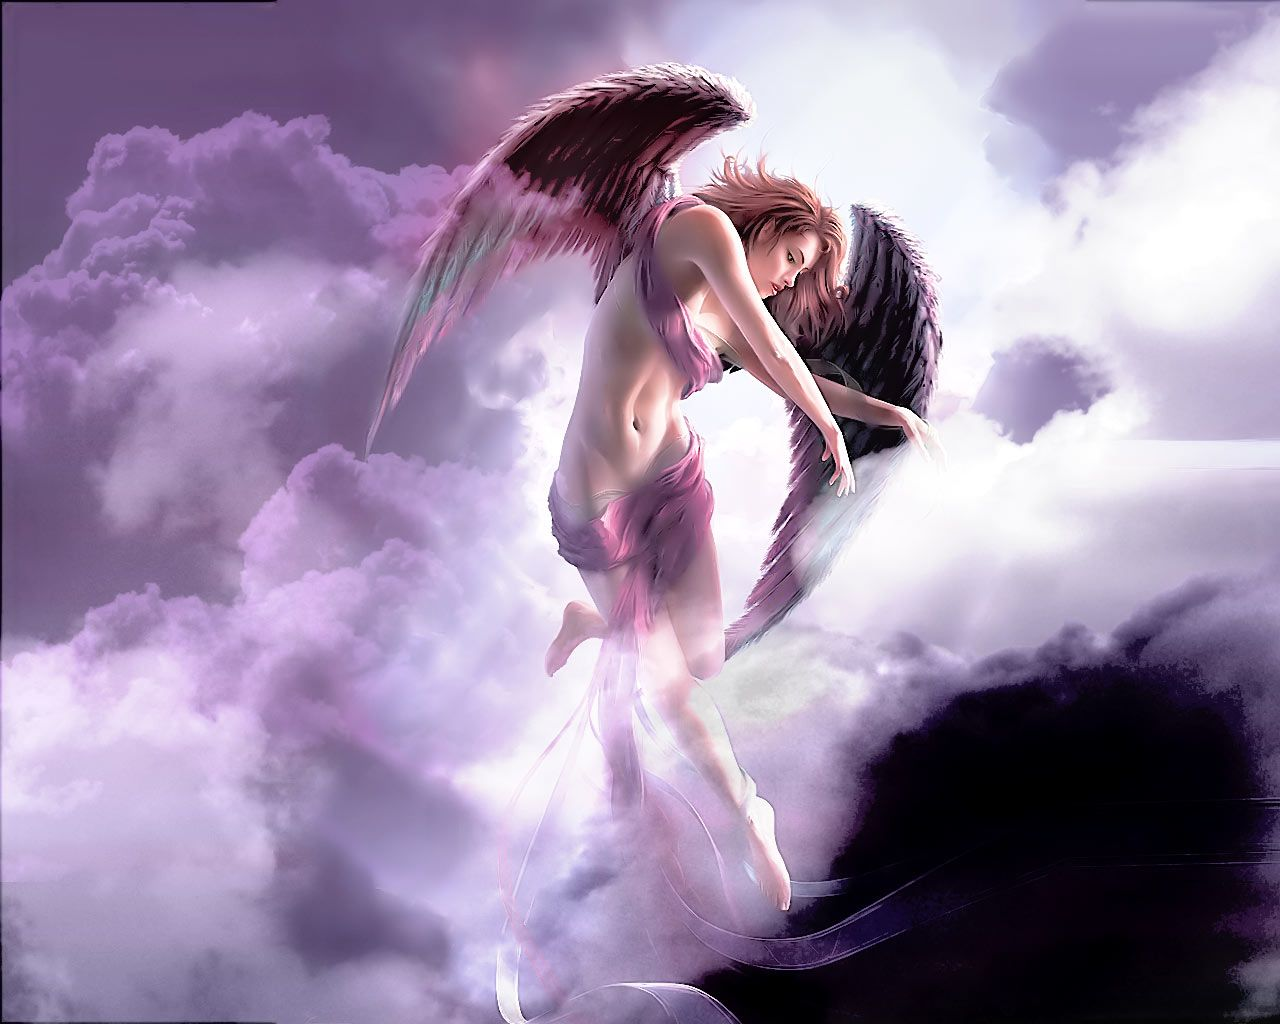 Beautiful Pink Angel Hd Wallpaper For Desktop Imagefully Com Images Quotes Photos Pictures Jokes Angel Wallpaper Angel Pictures Angel Art